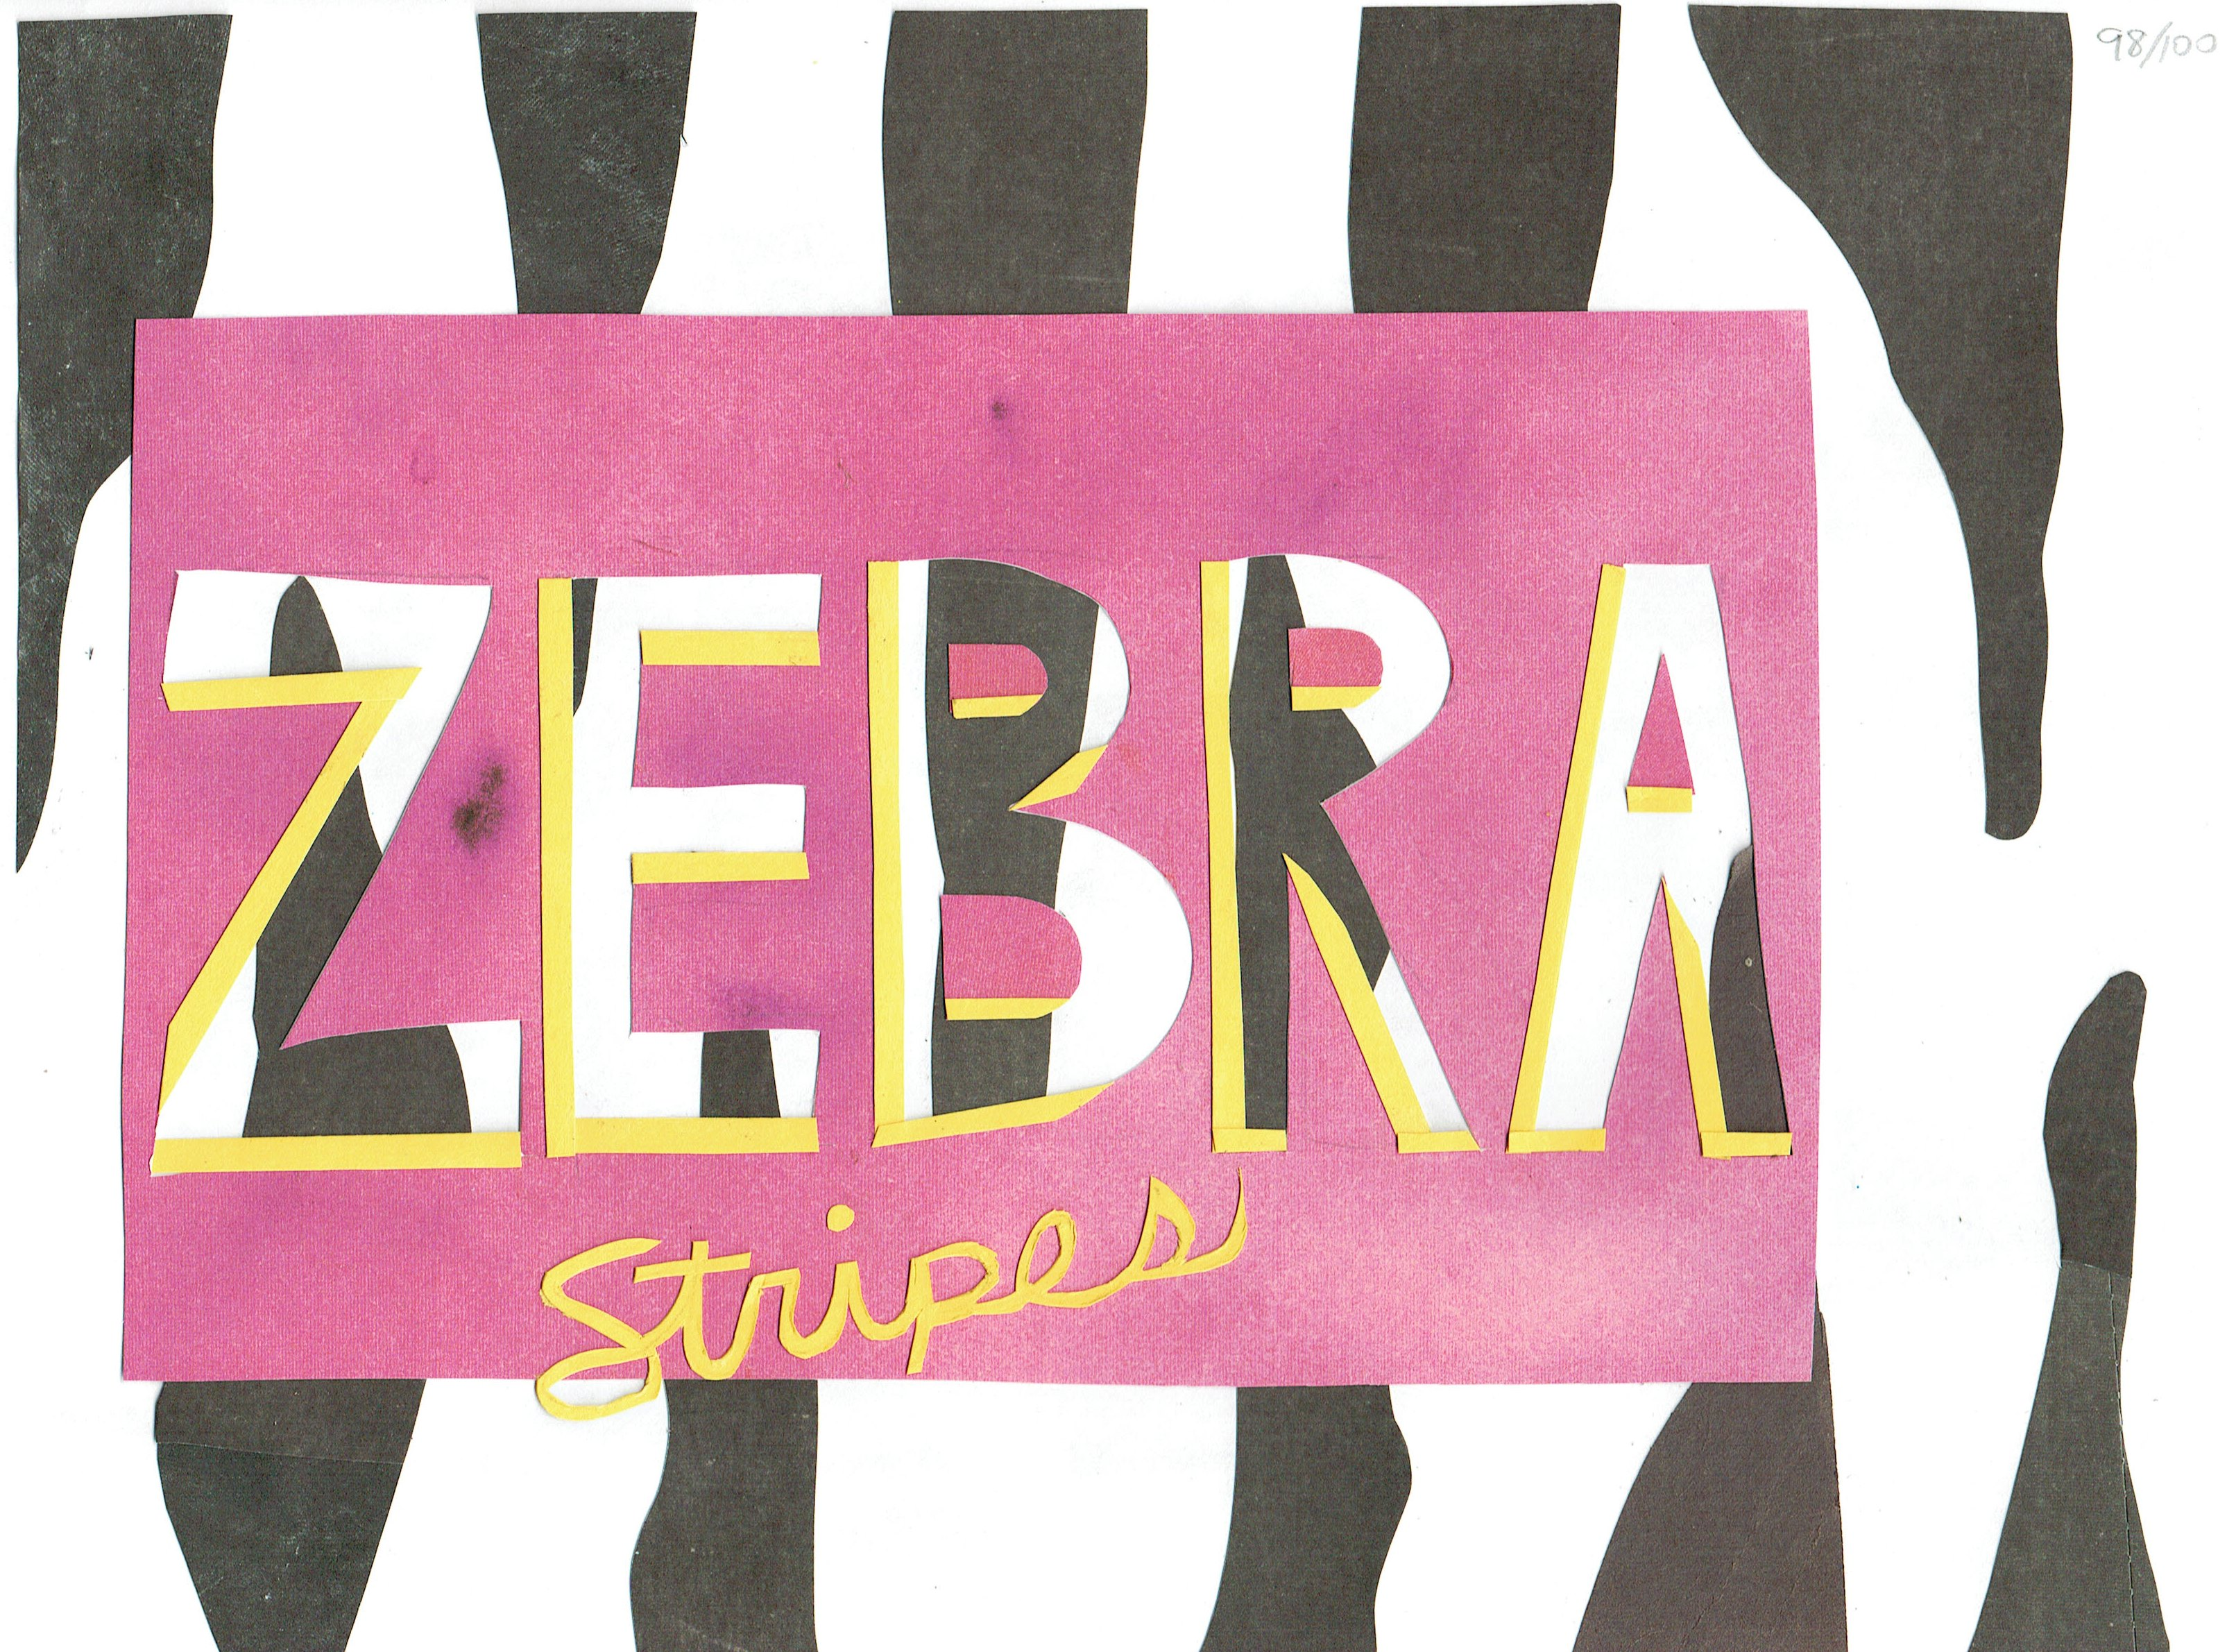 Day 98 - Zebra Stripes